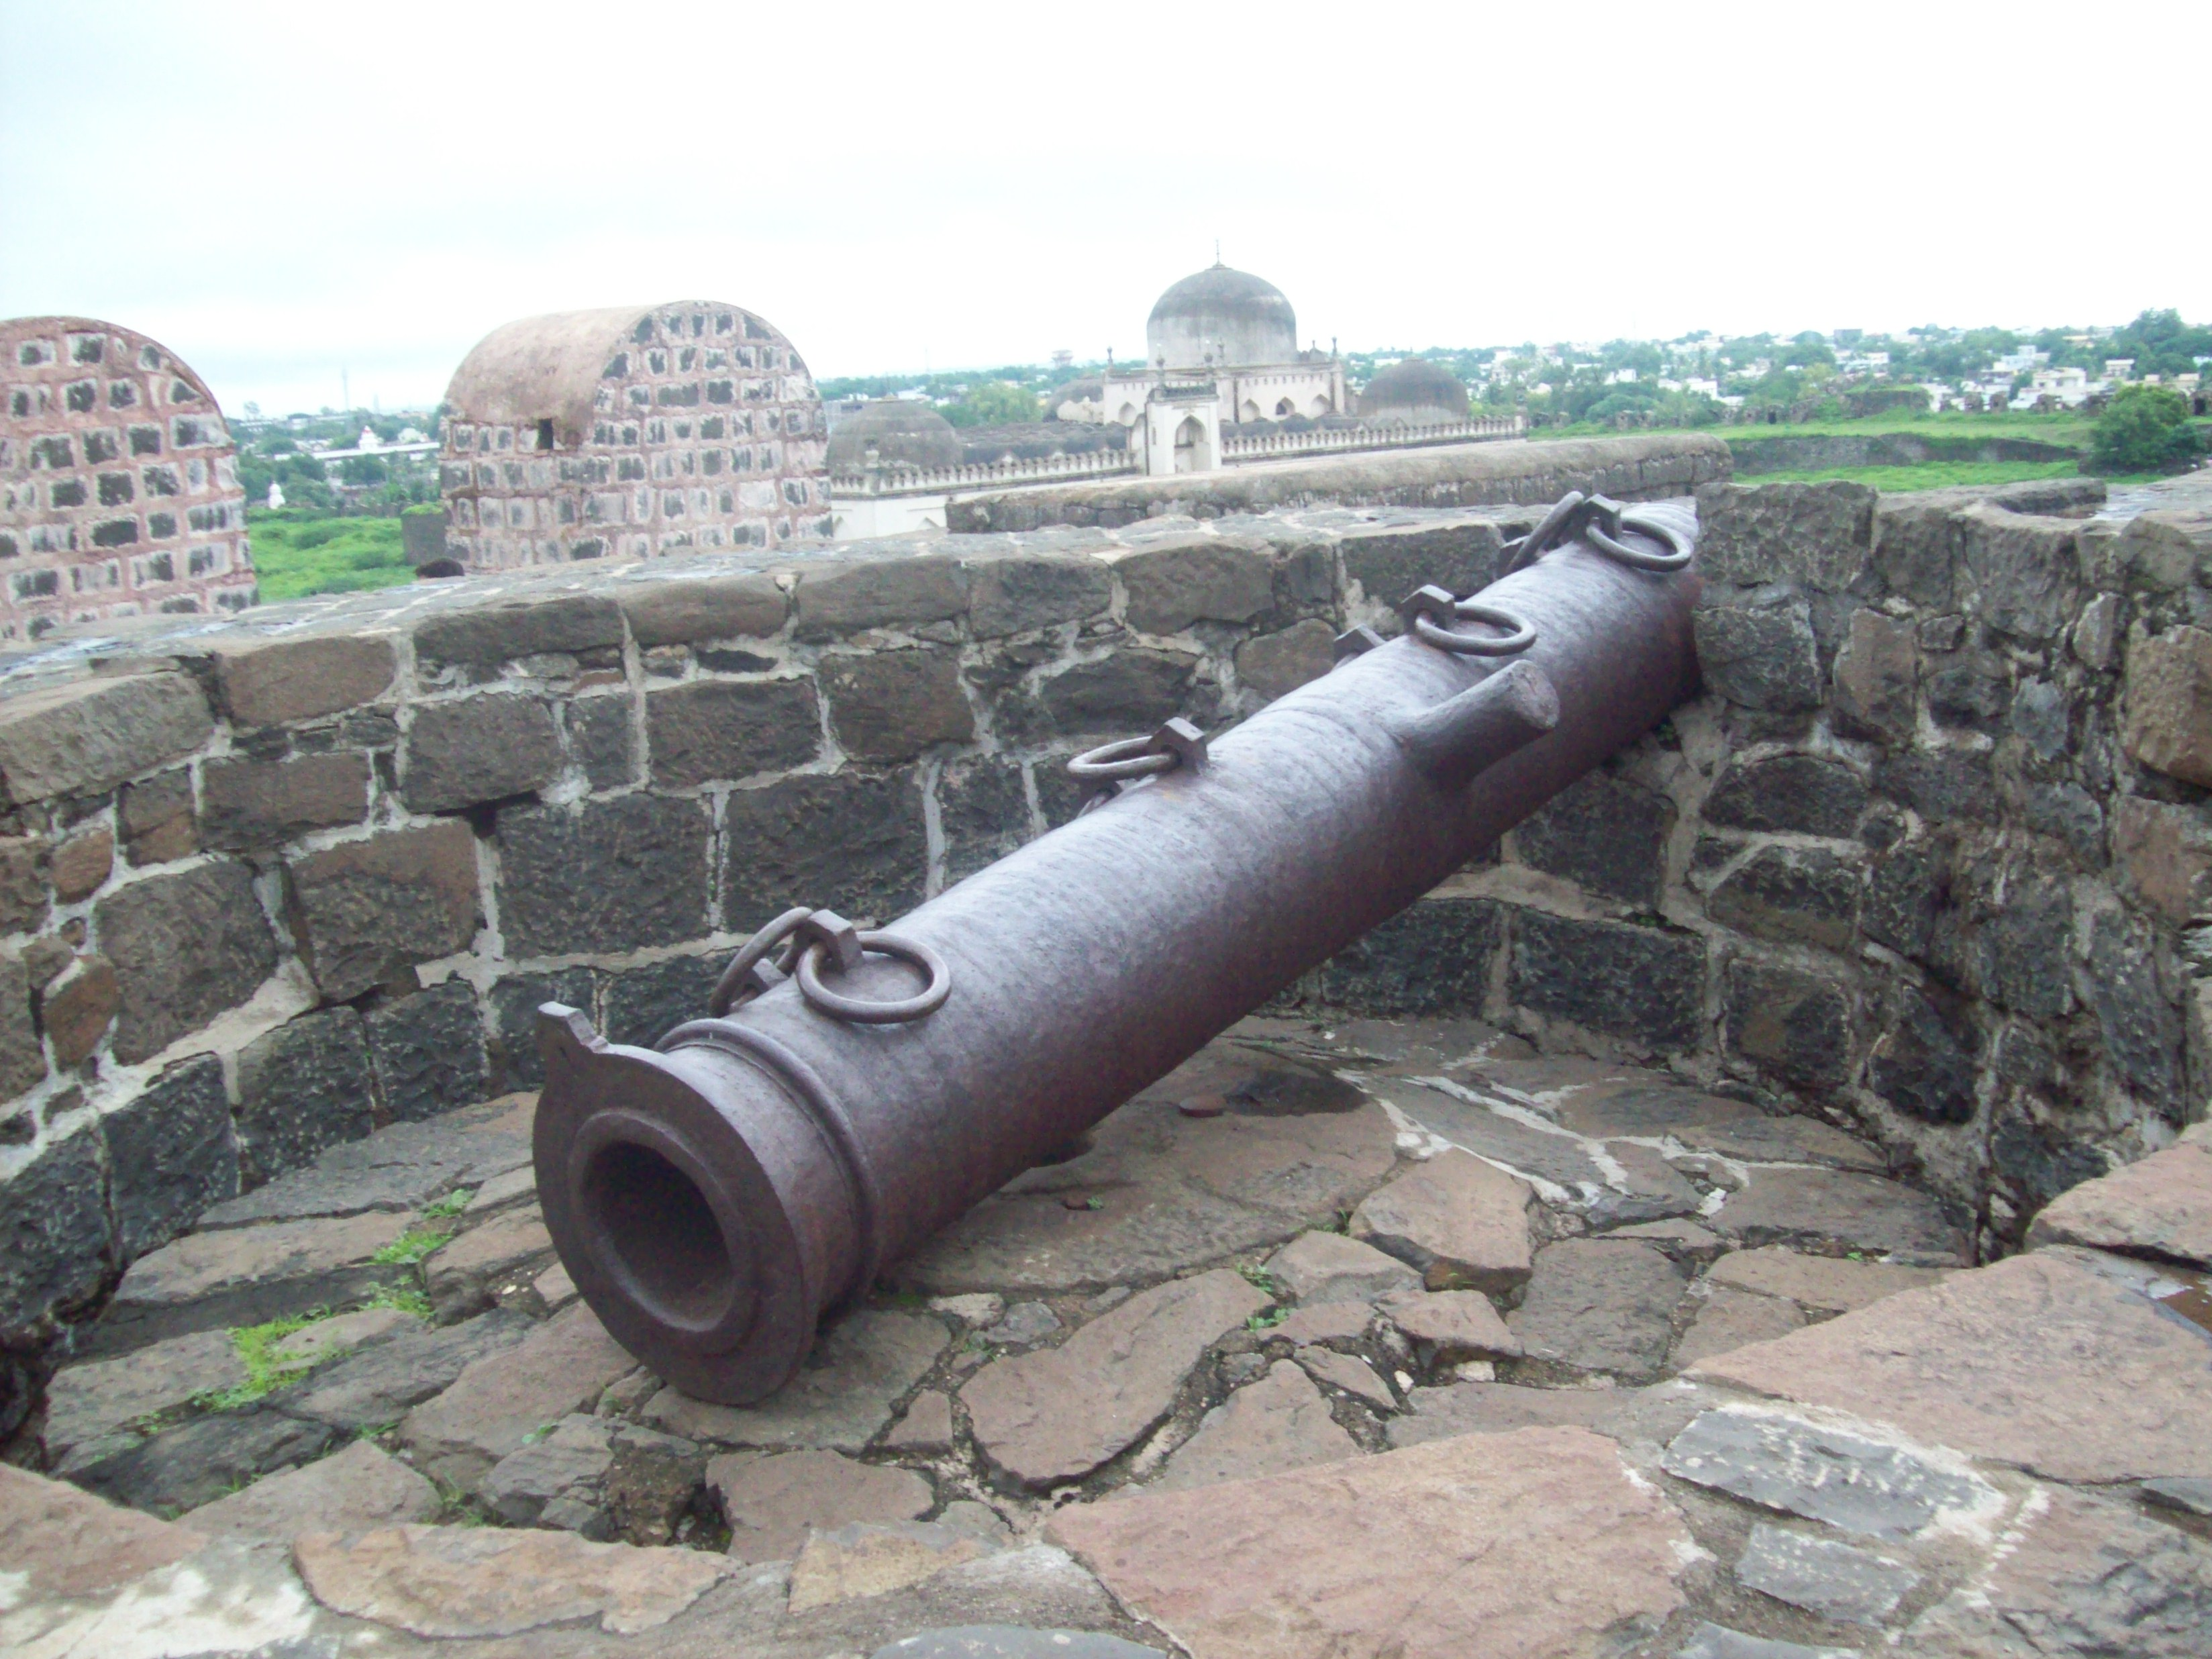 File:Gulbarga Fort & Mosque.JPG.